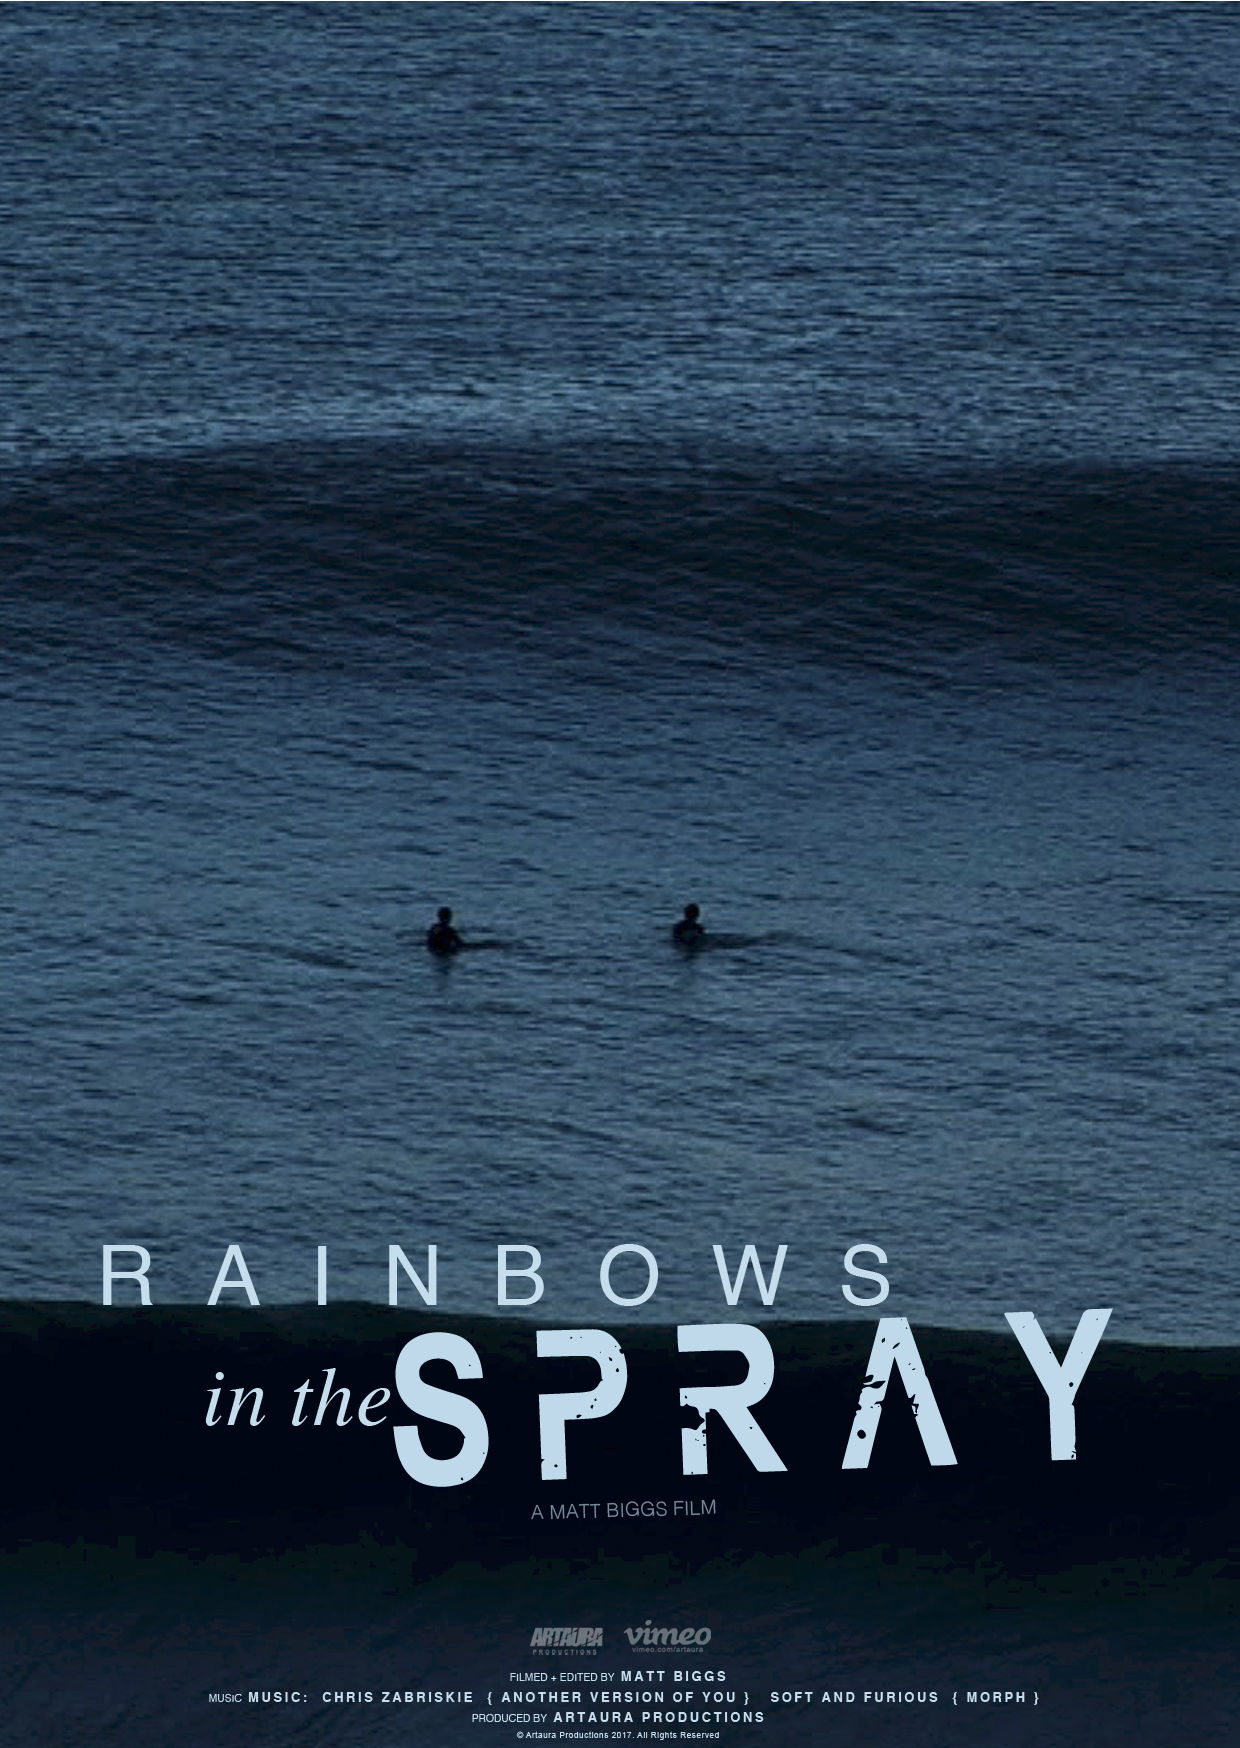 RAINBOWS IN THE SPRAY